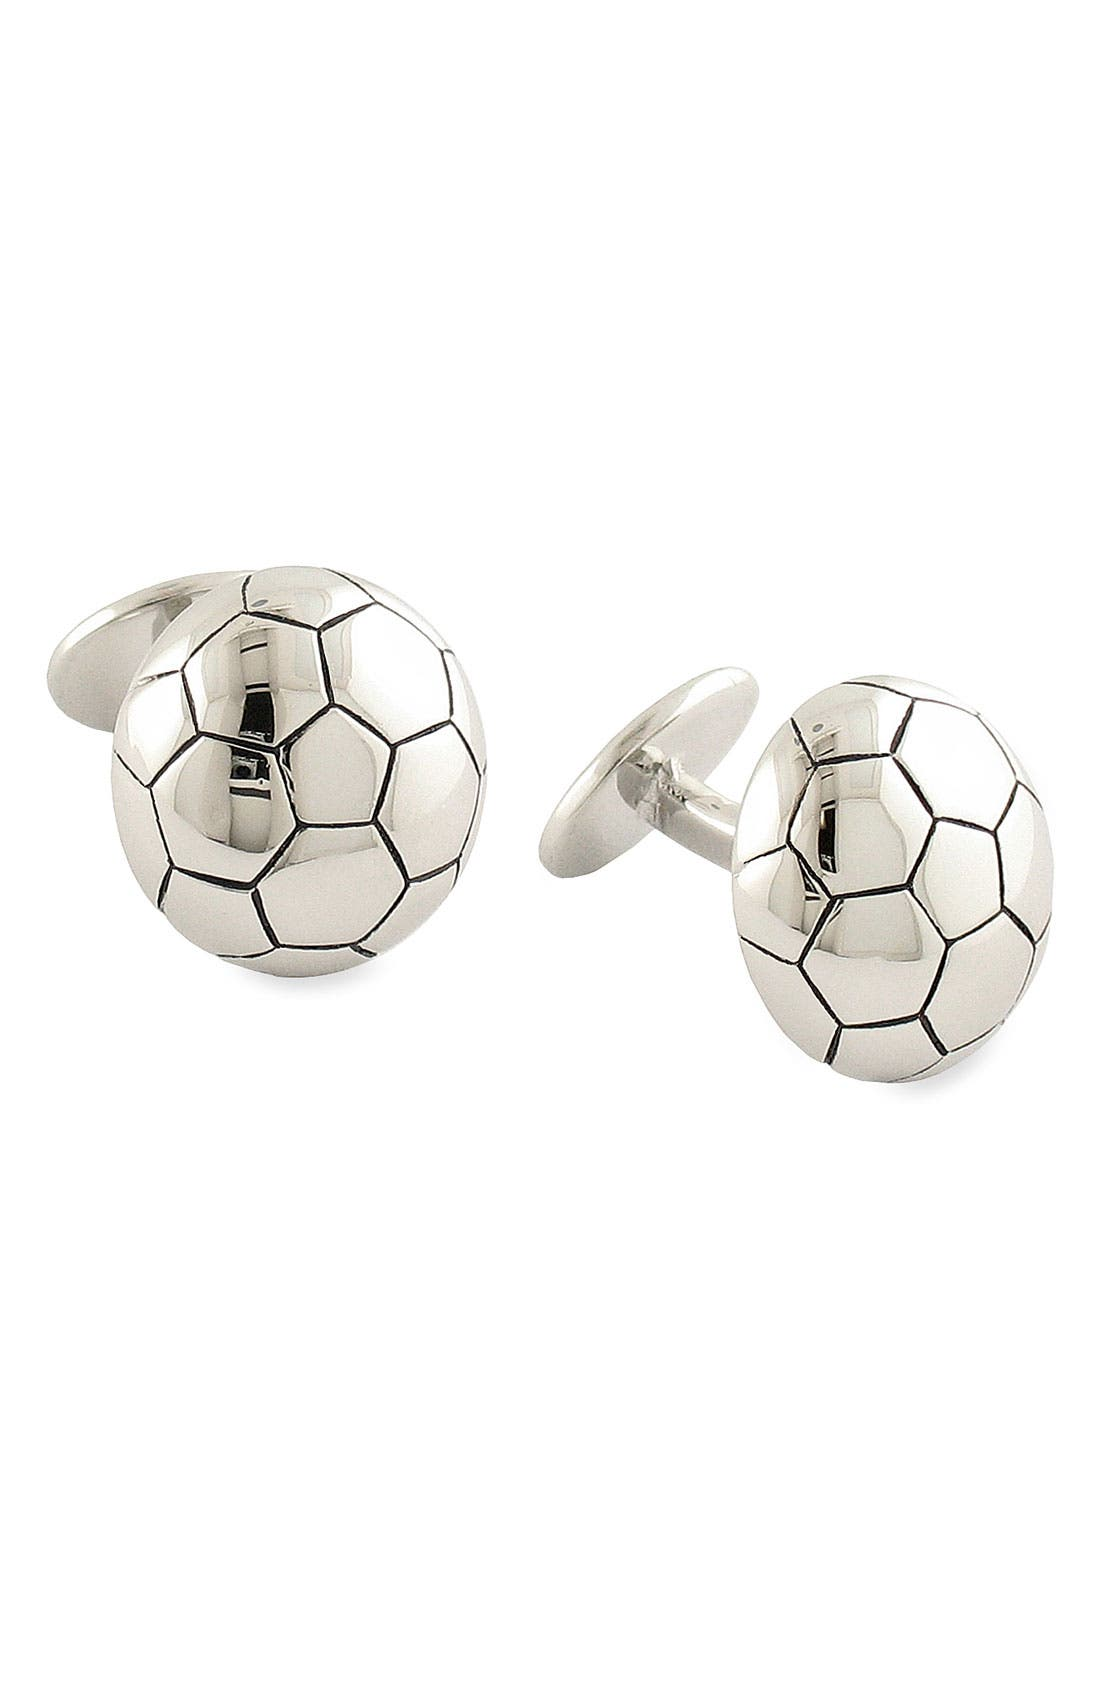 Main Image - David Donahue 'Soccer' Sterling Silver Cuff Links